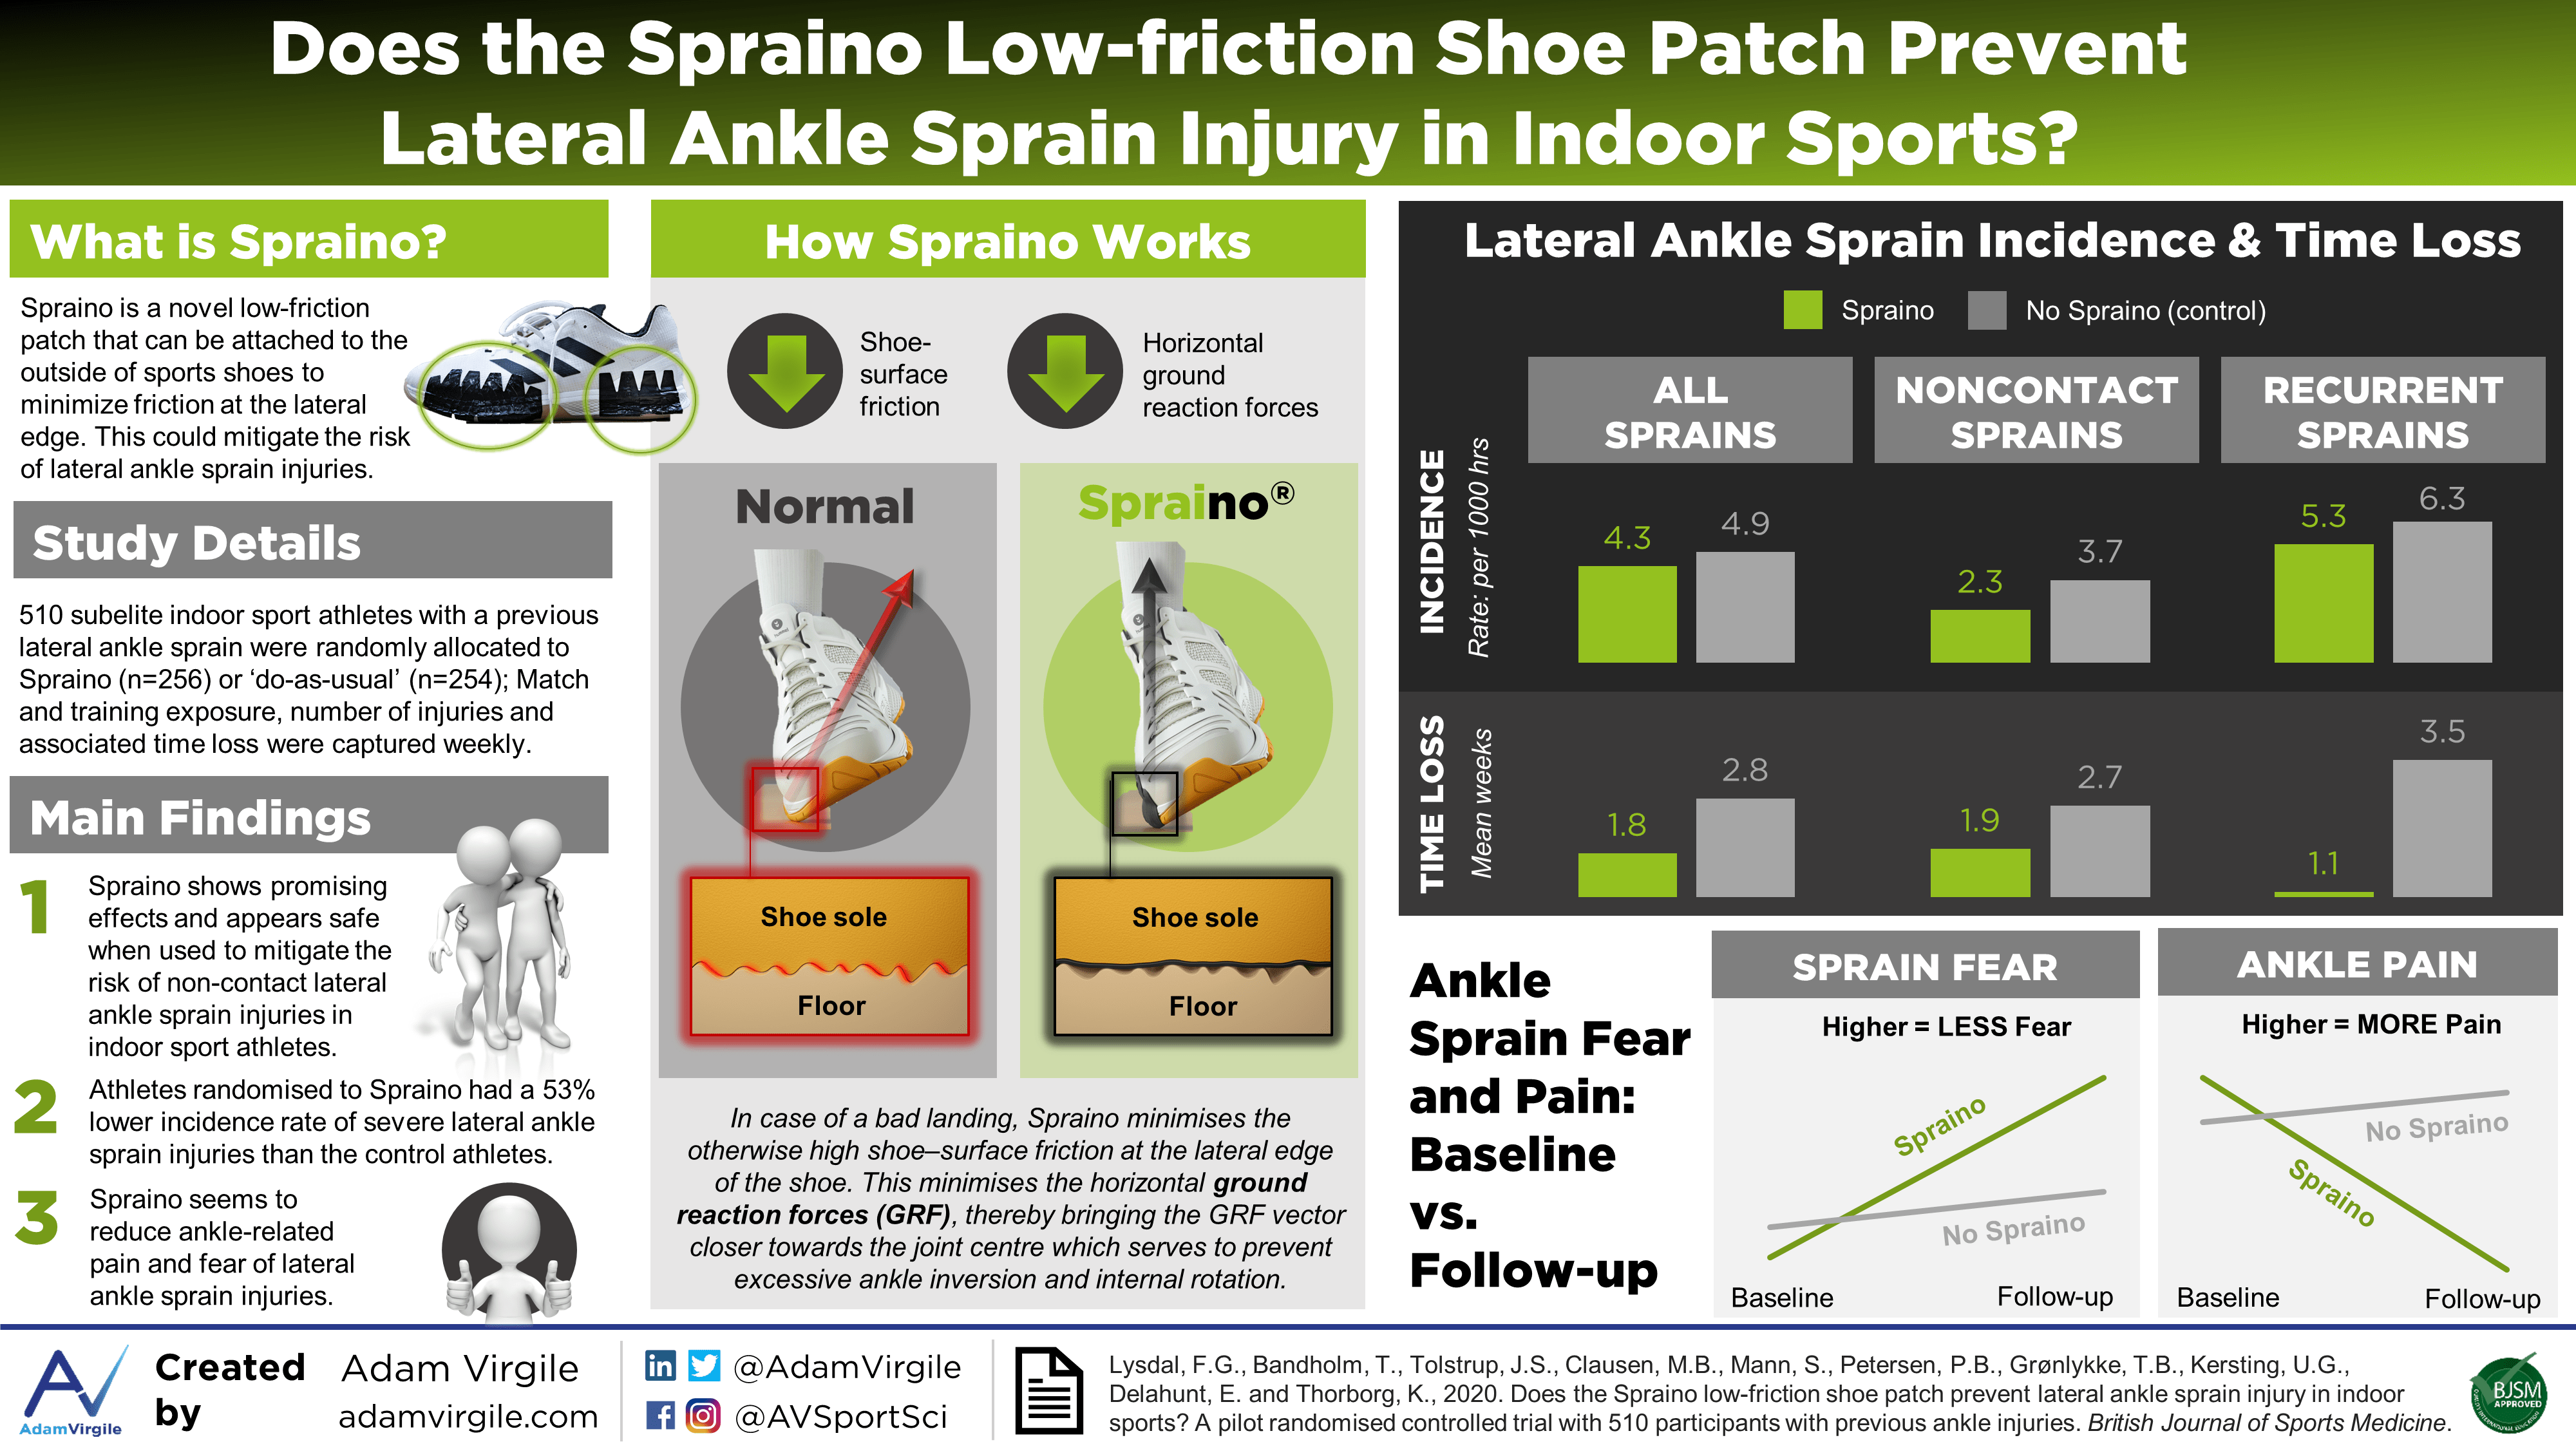 Does the Spraino low-friction shoe patch prevent lateral ankle sprain injury in indoor sports?